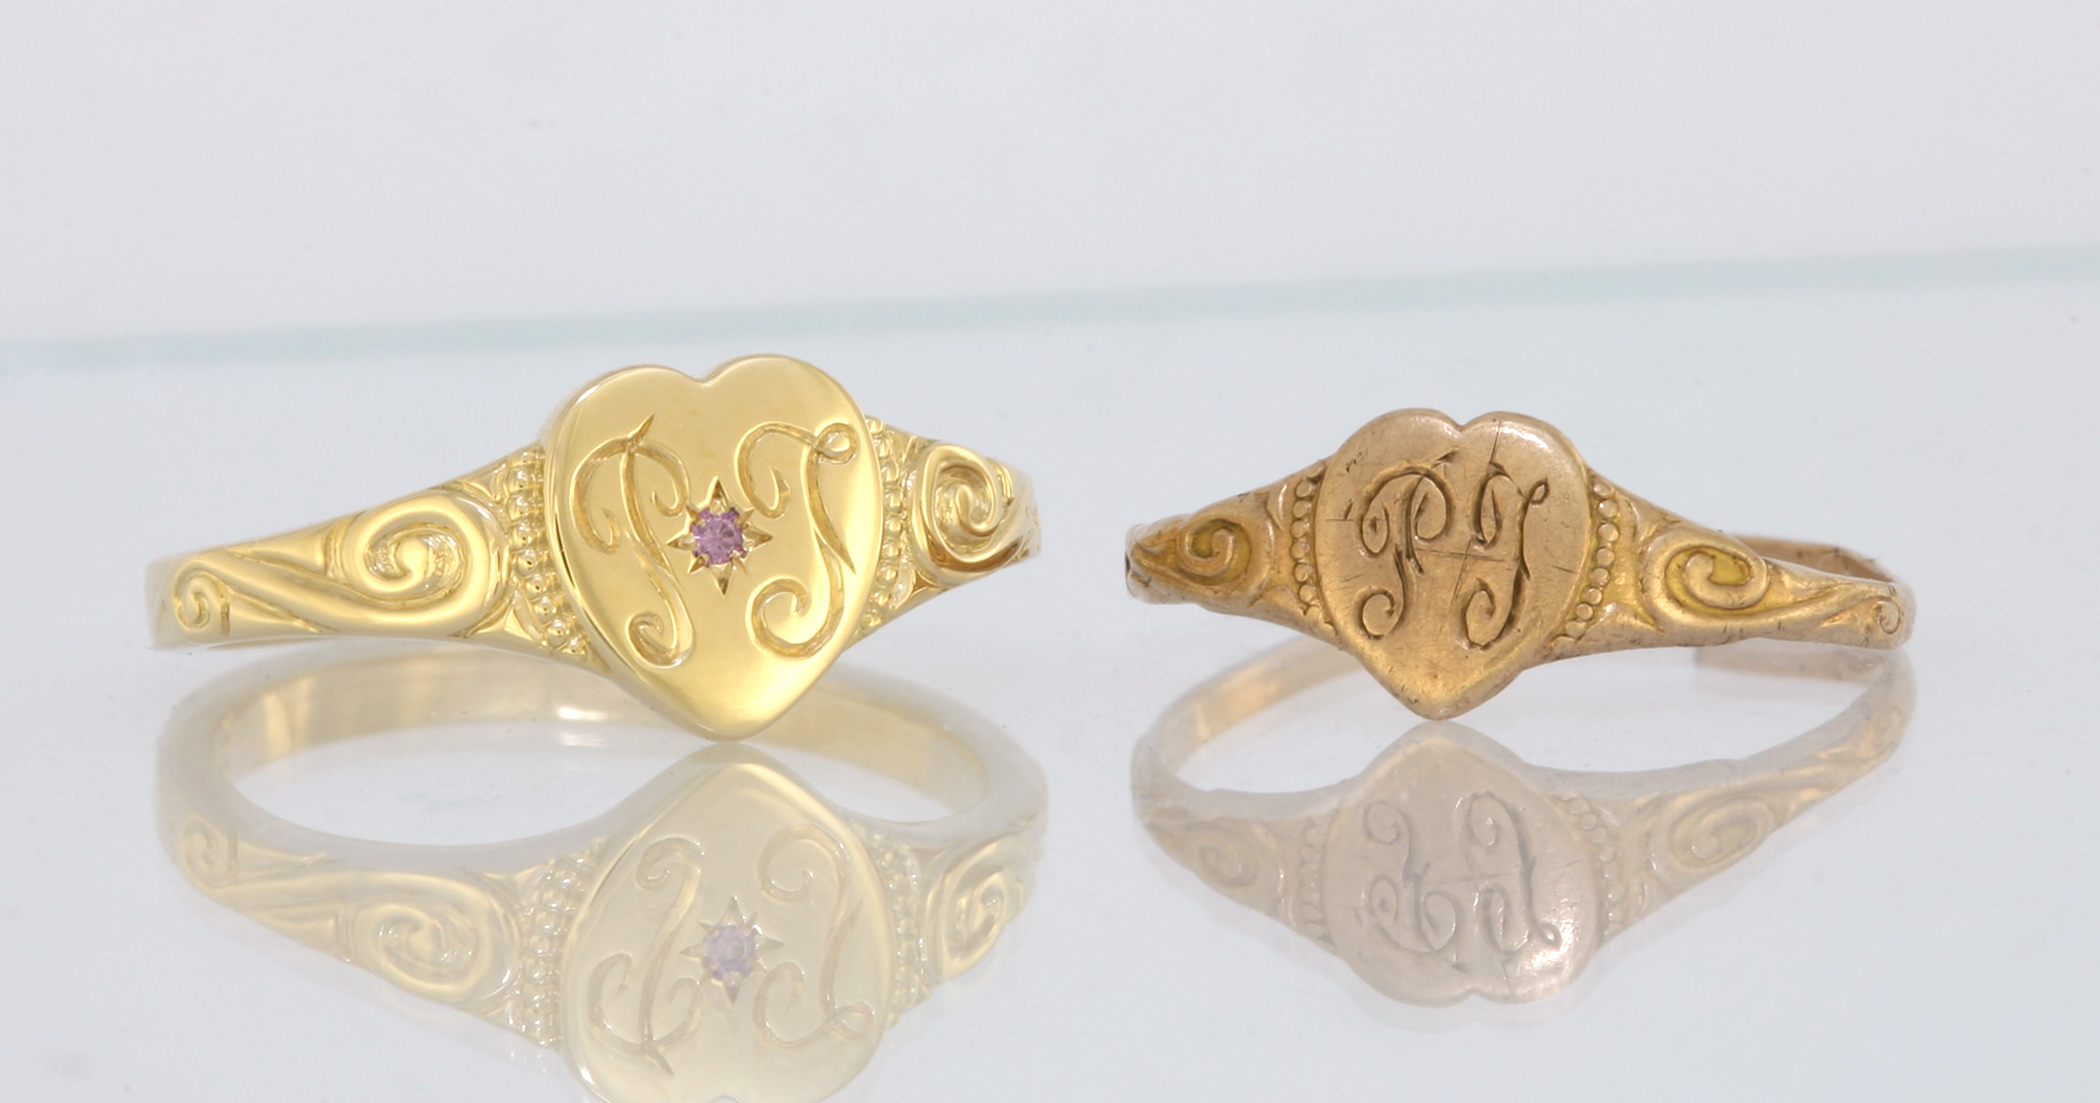 The ring I made on the left with the ring it was modelled off on the right.